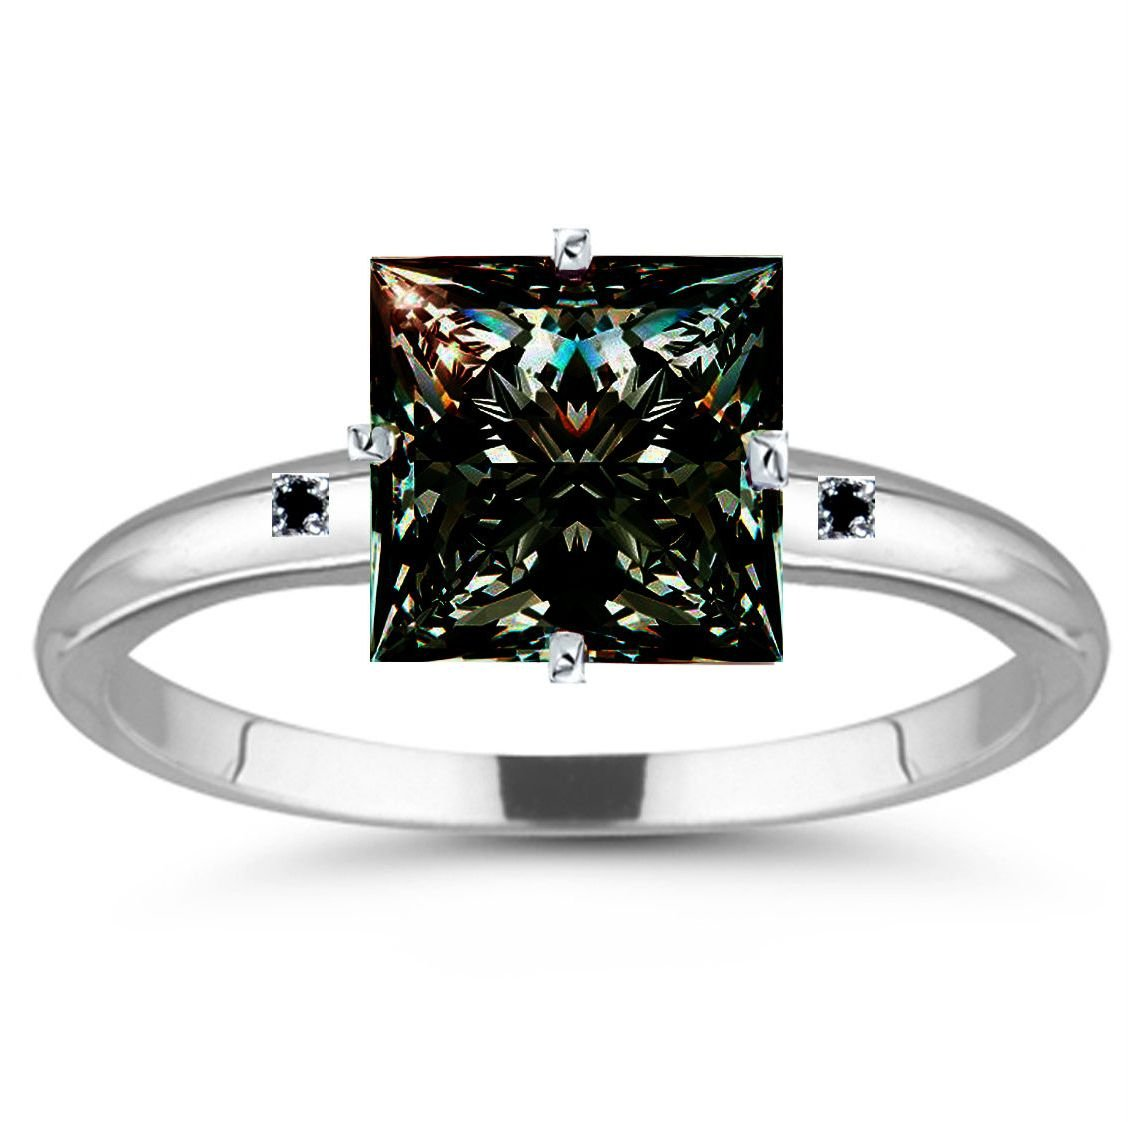 RINGJEWEL 11.90 ct I3 Princess Real Moissanite Engagement Silver Plated Ring Brown Green Color Size 7